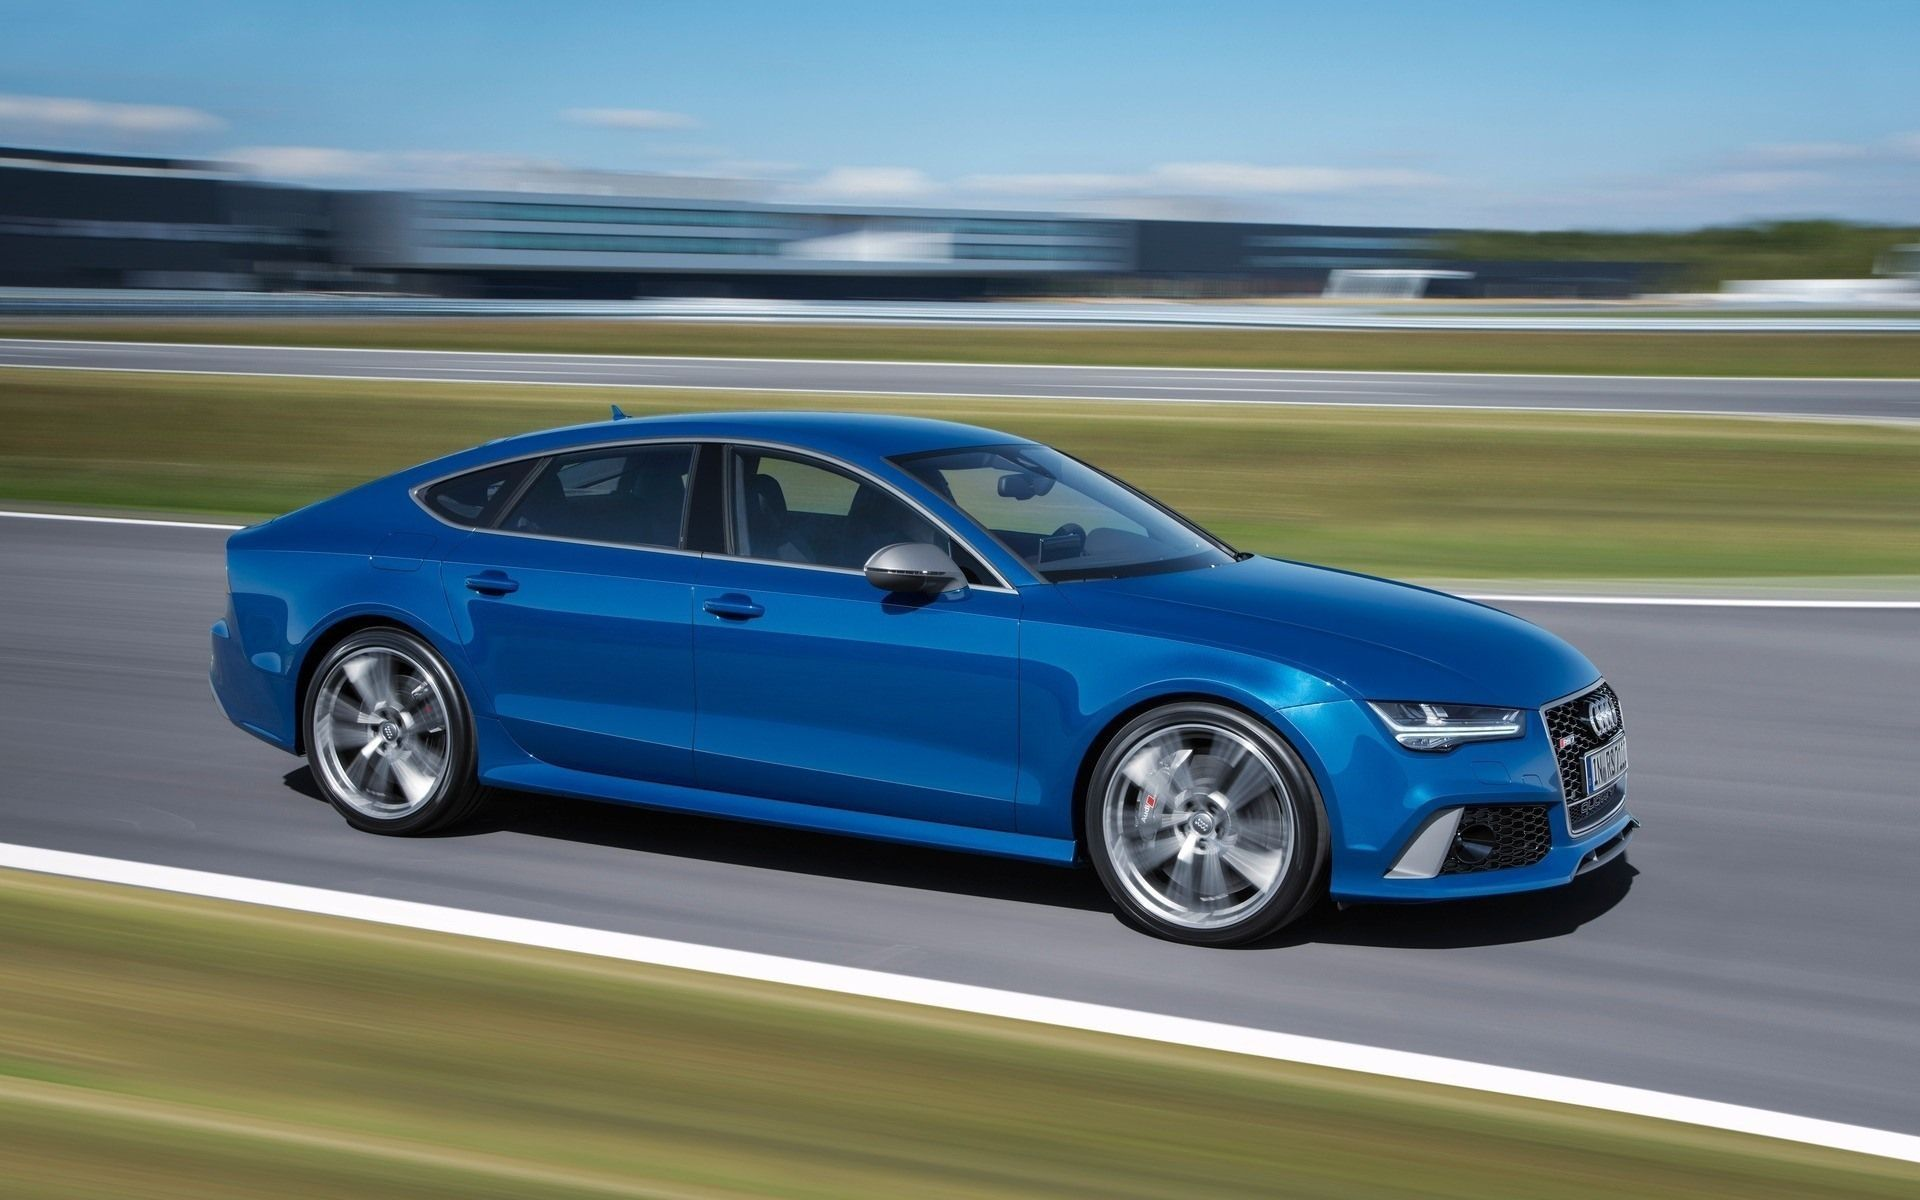 2020 Audi A7 Engine Audi Will Resolutely Swap Its Variety Of Versions That Will Be Totally Up To Date In The Time Period Invo Audi A7 Audi Audi A7 Sportback